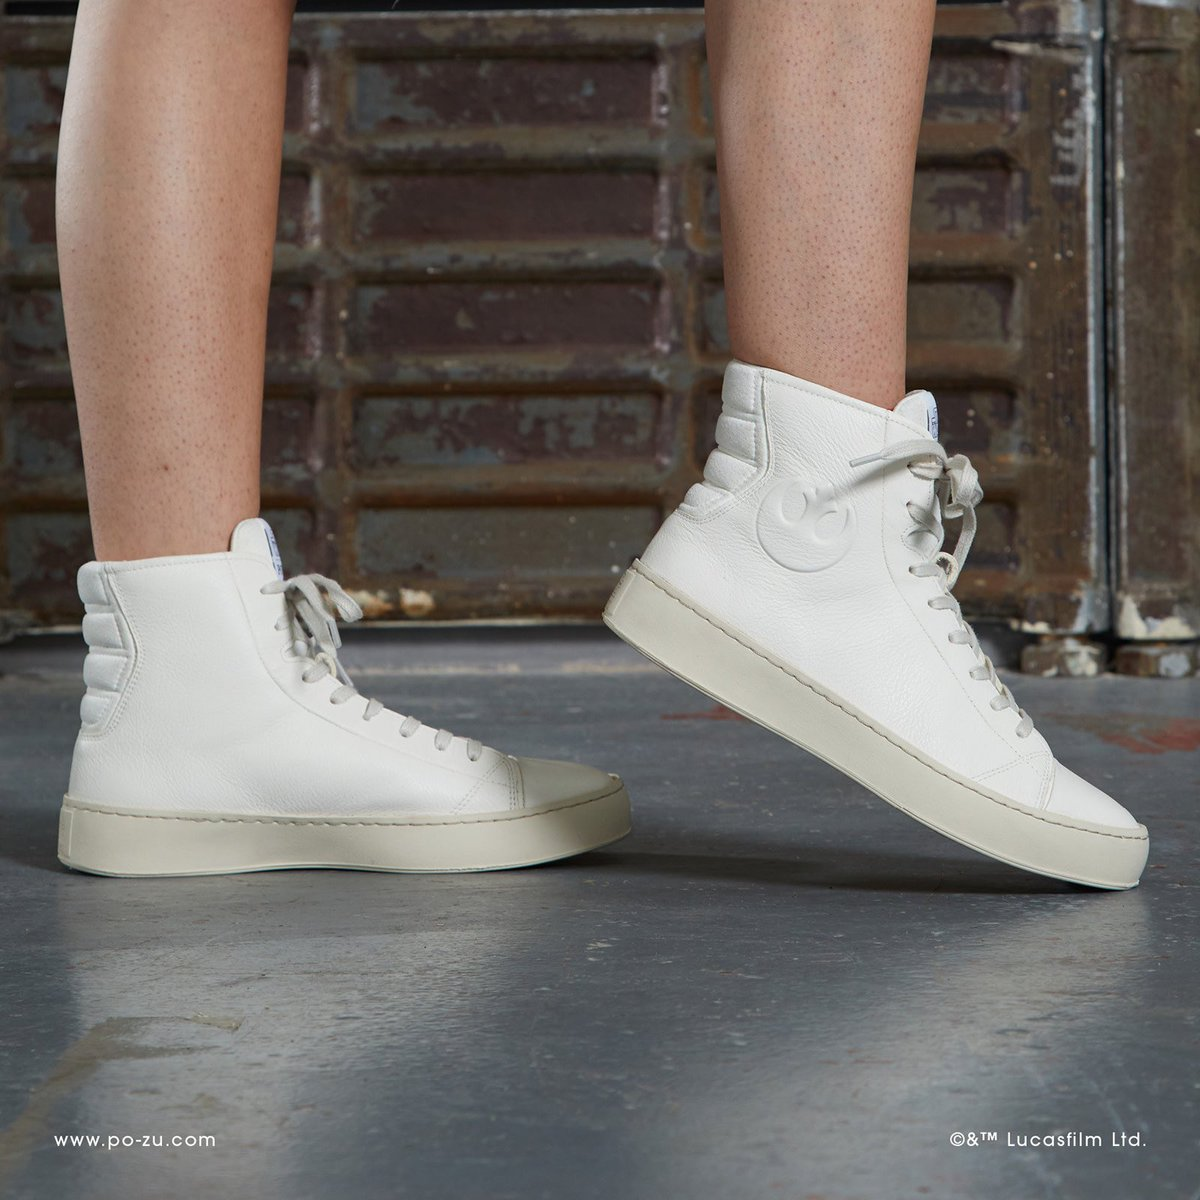 94fd986694 Feel the force with Star Wars™ x Po-zu s latest luxury leather RESISTANCE  sneaker for men and women. £145 (approx US  192) at http   www.